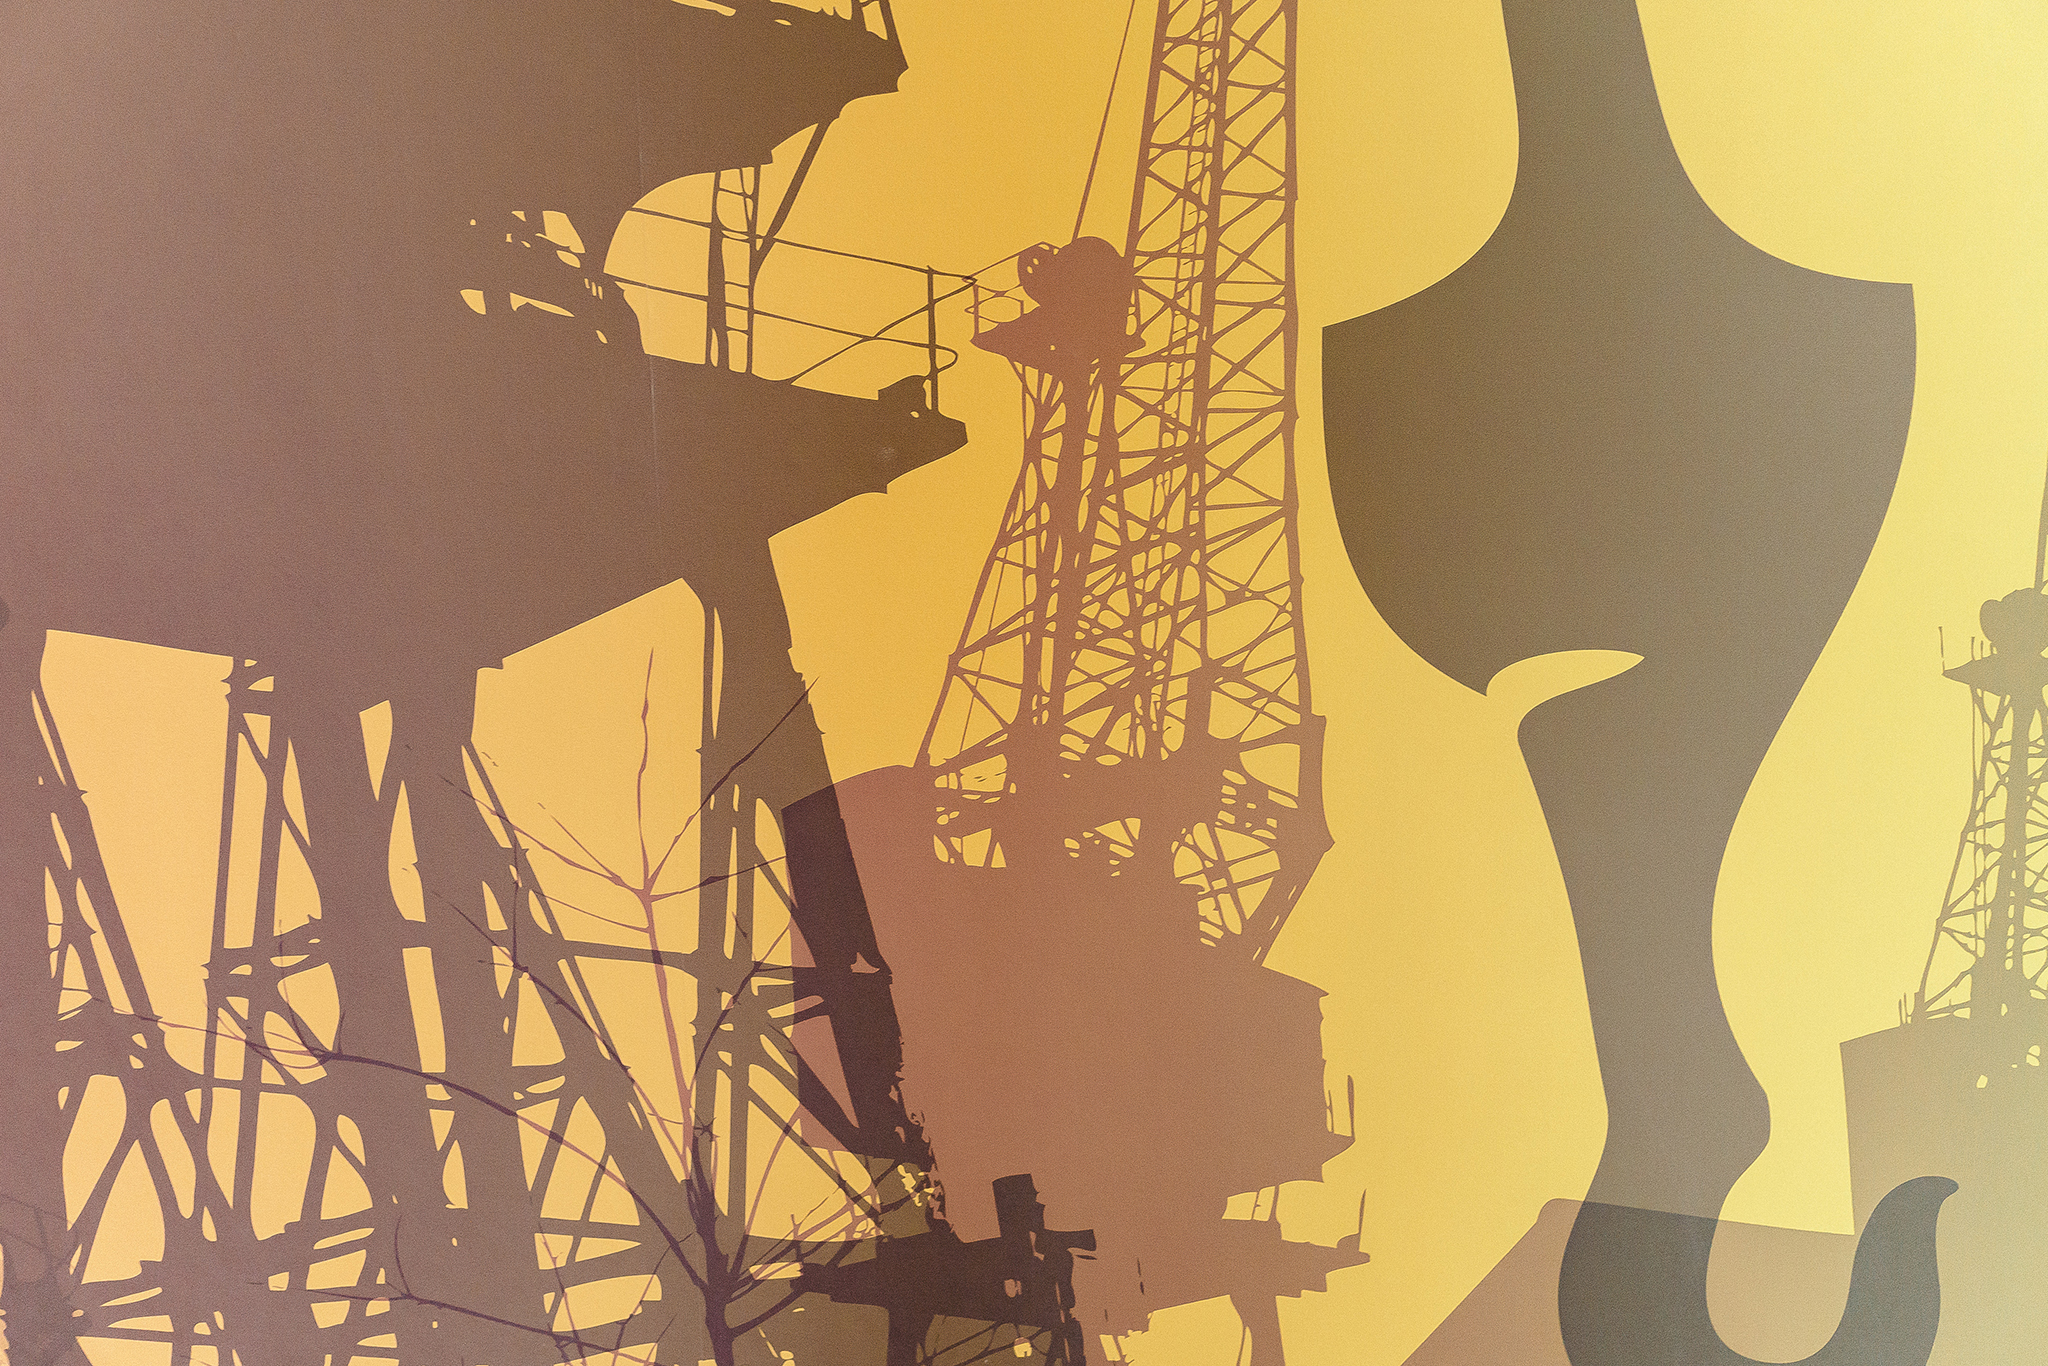 Yellow orange wallpaper with shadows of cranes.